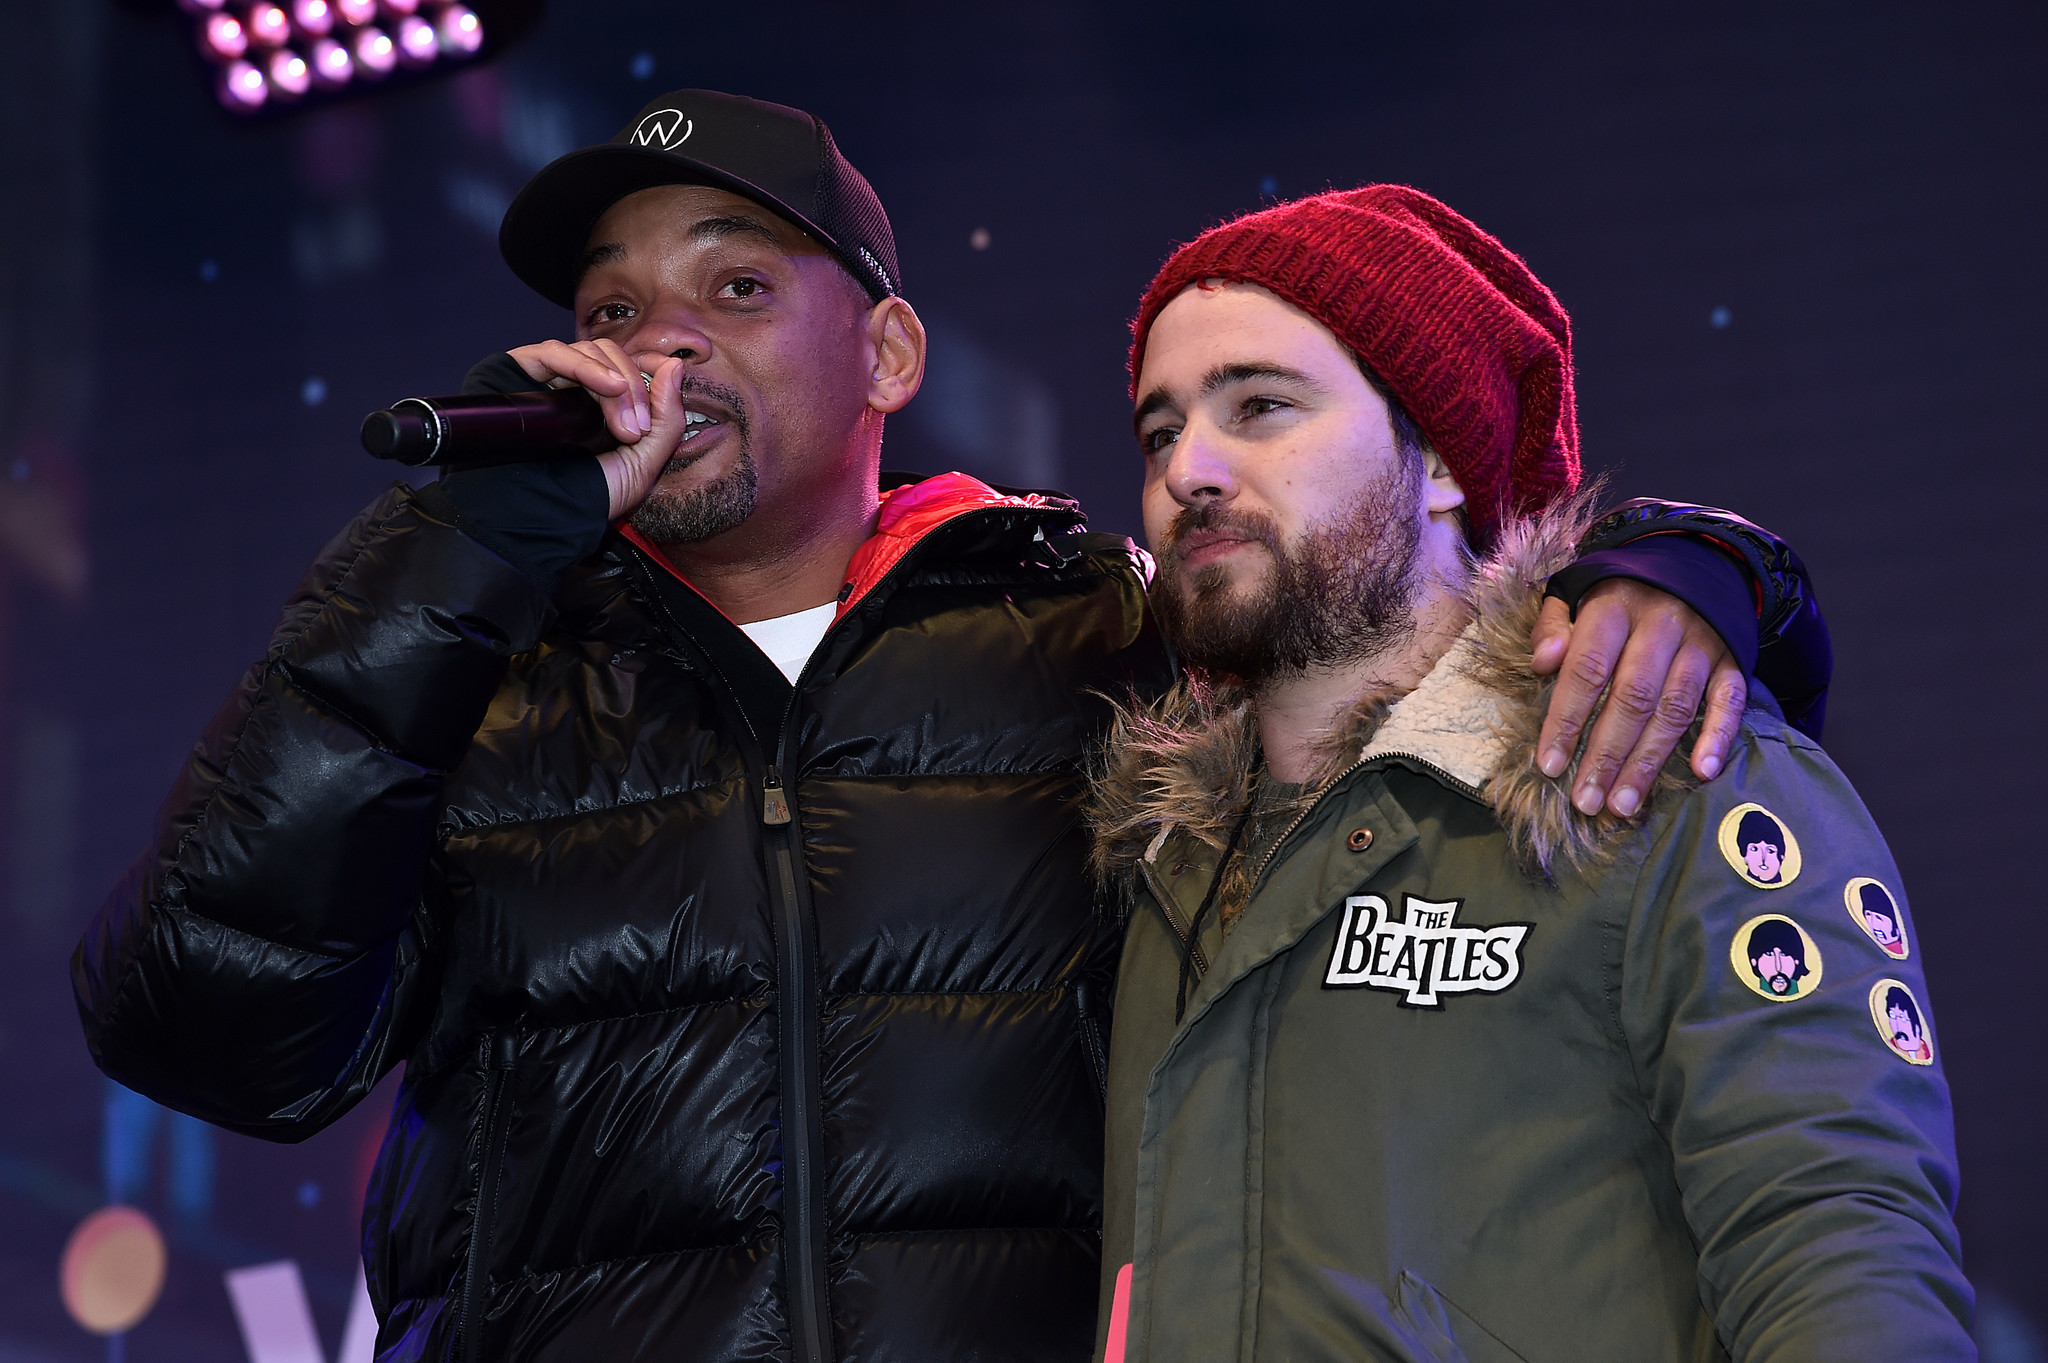 SEE IT: Will Smith performs 'Fresh Prince' theme as bedtime story during 'World's Big Sleep Out' fundraiser to fight homelessness